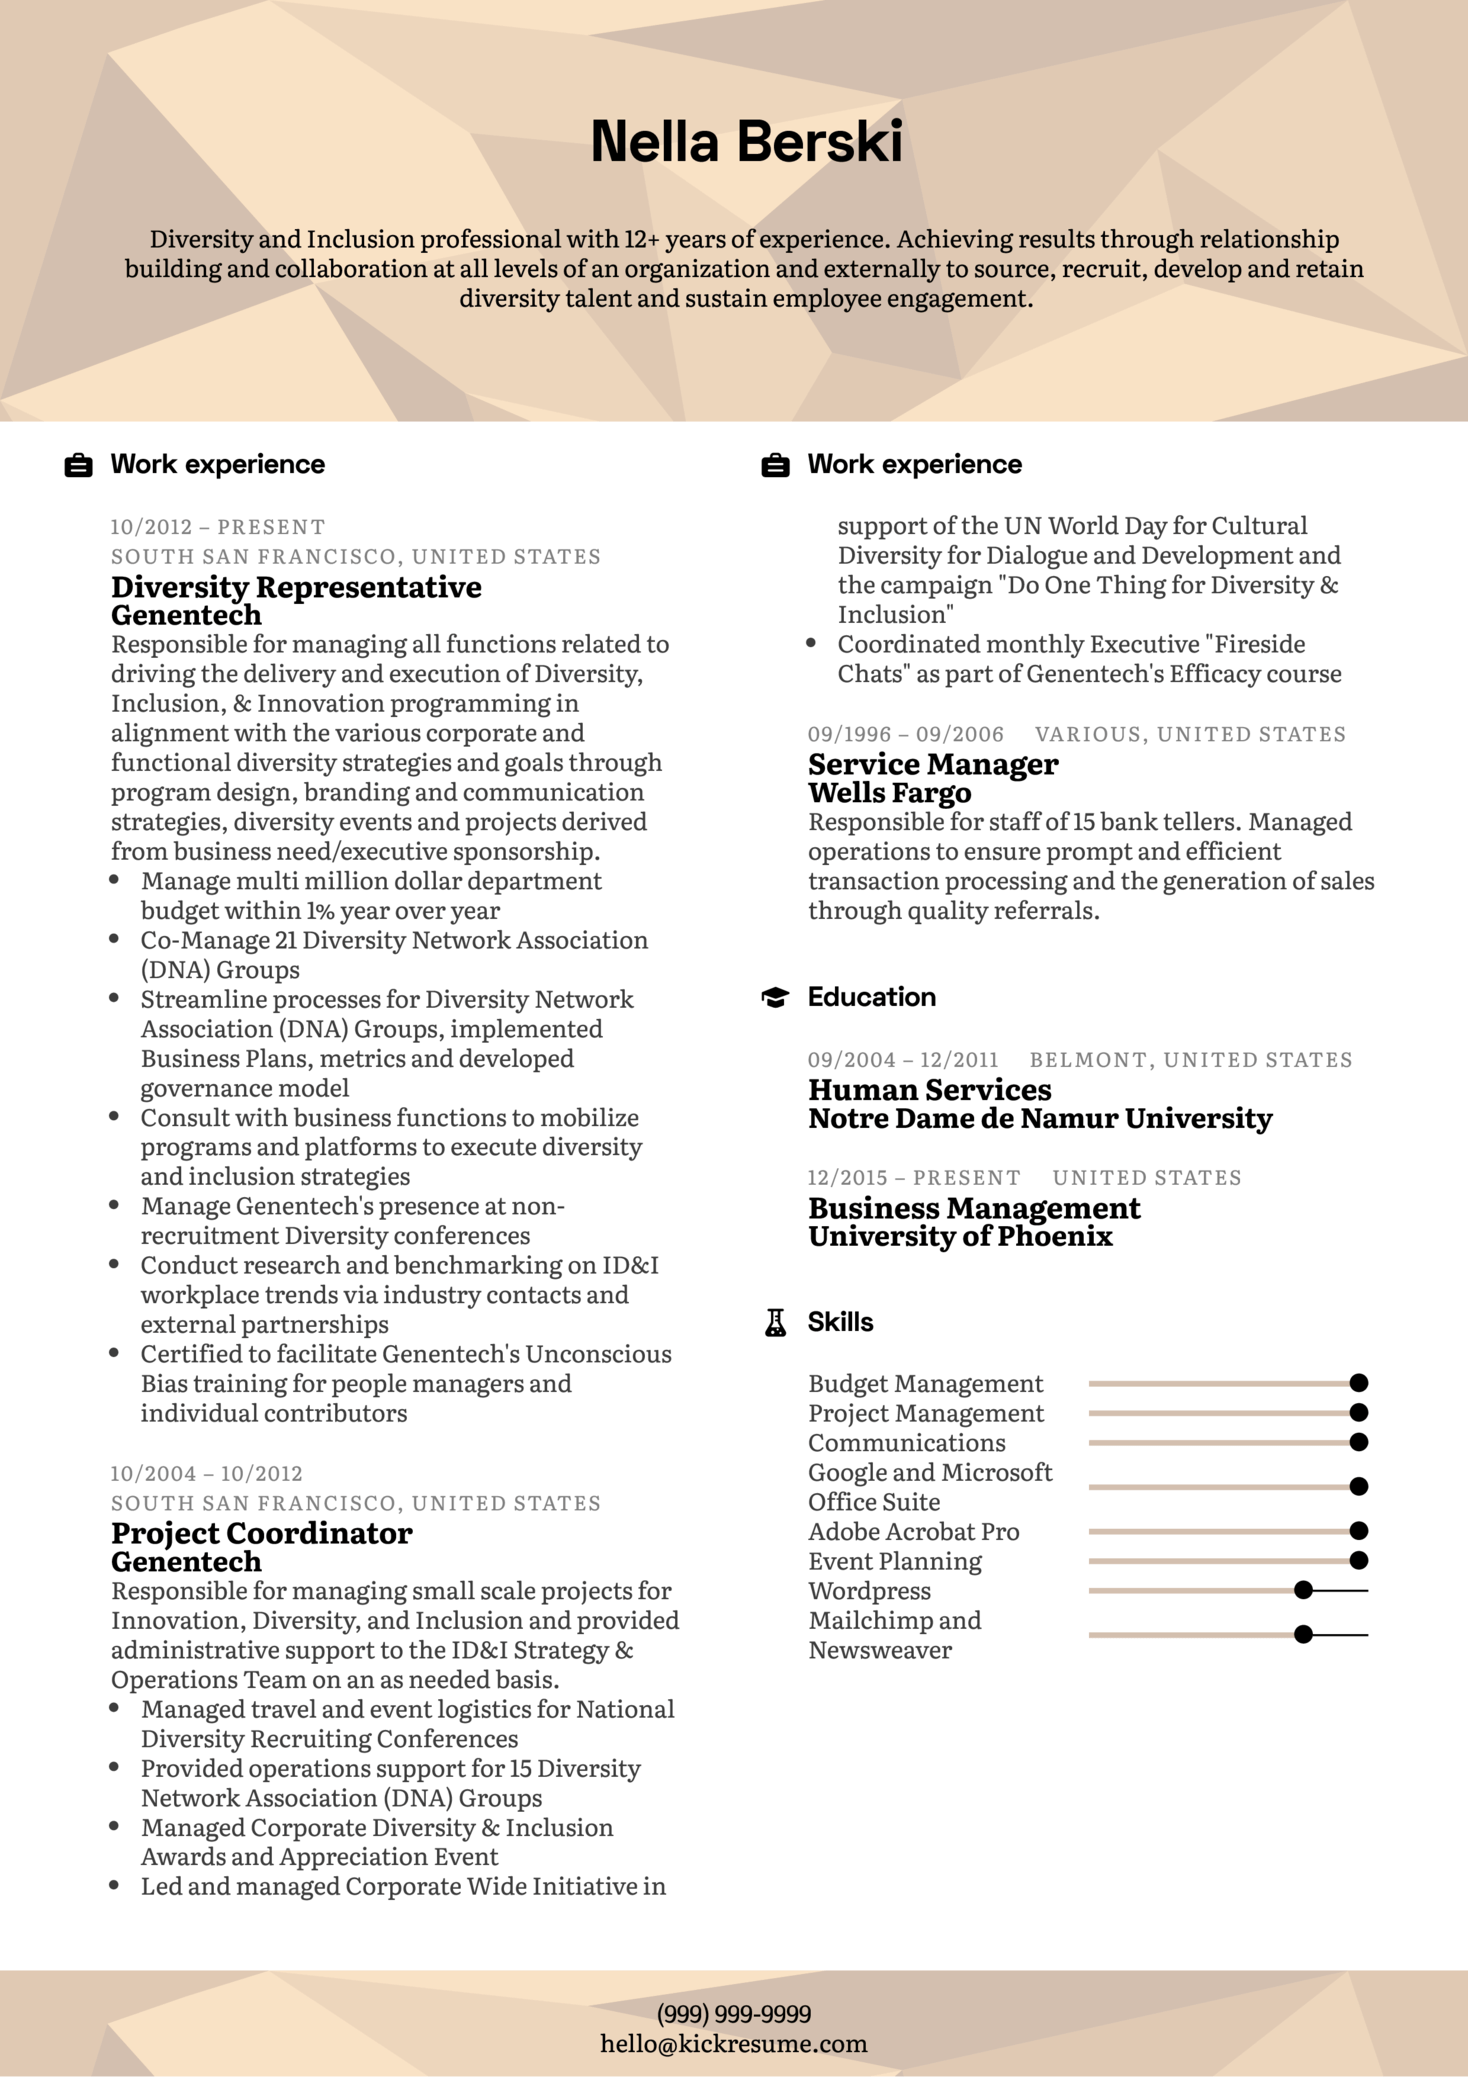 Diversity Manager Resume Example (Parte 1)